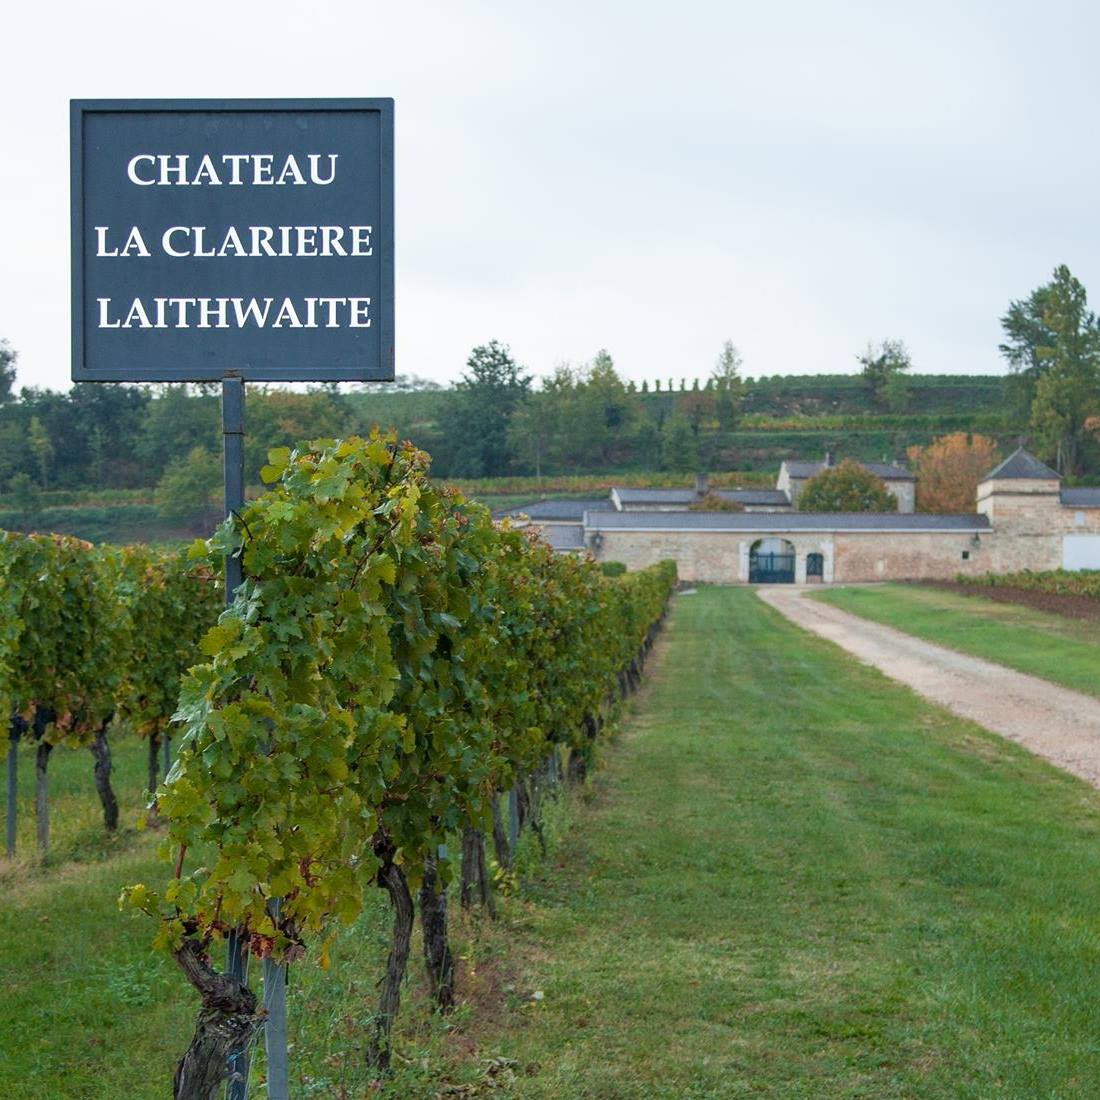 The Entrance to the Château